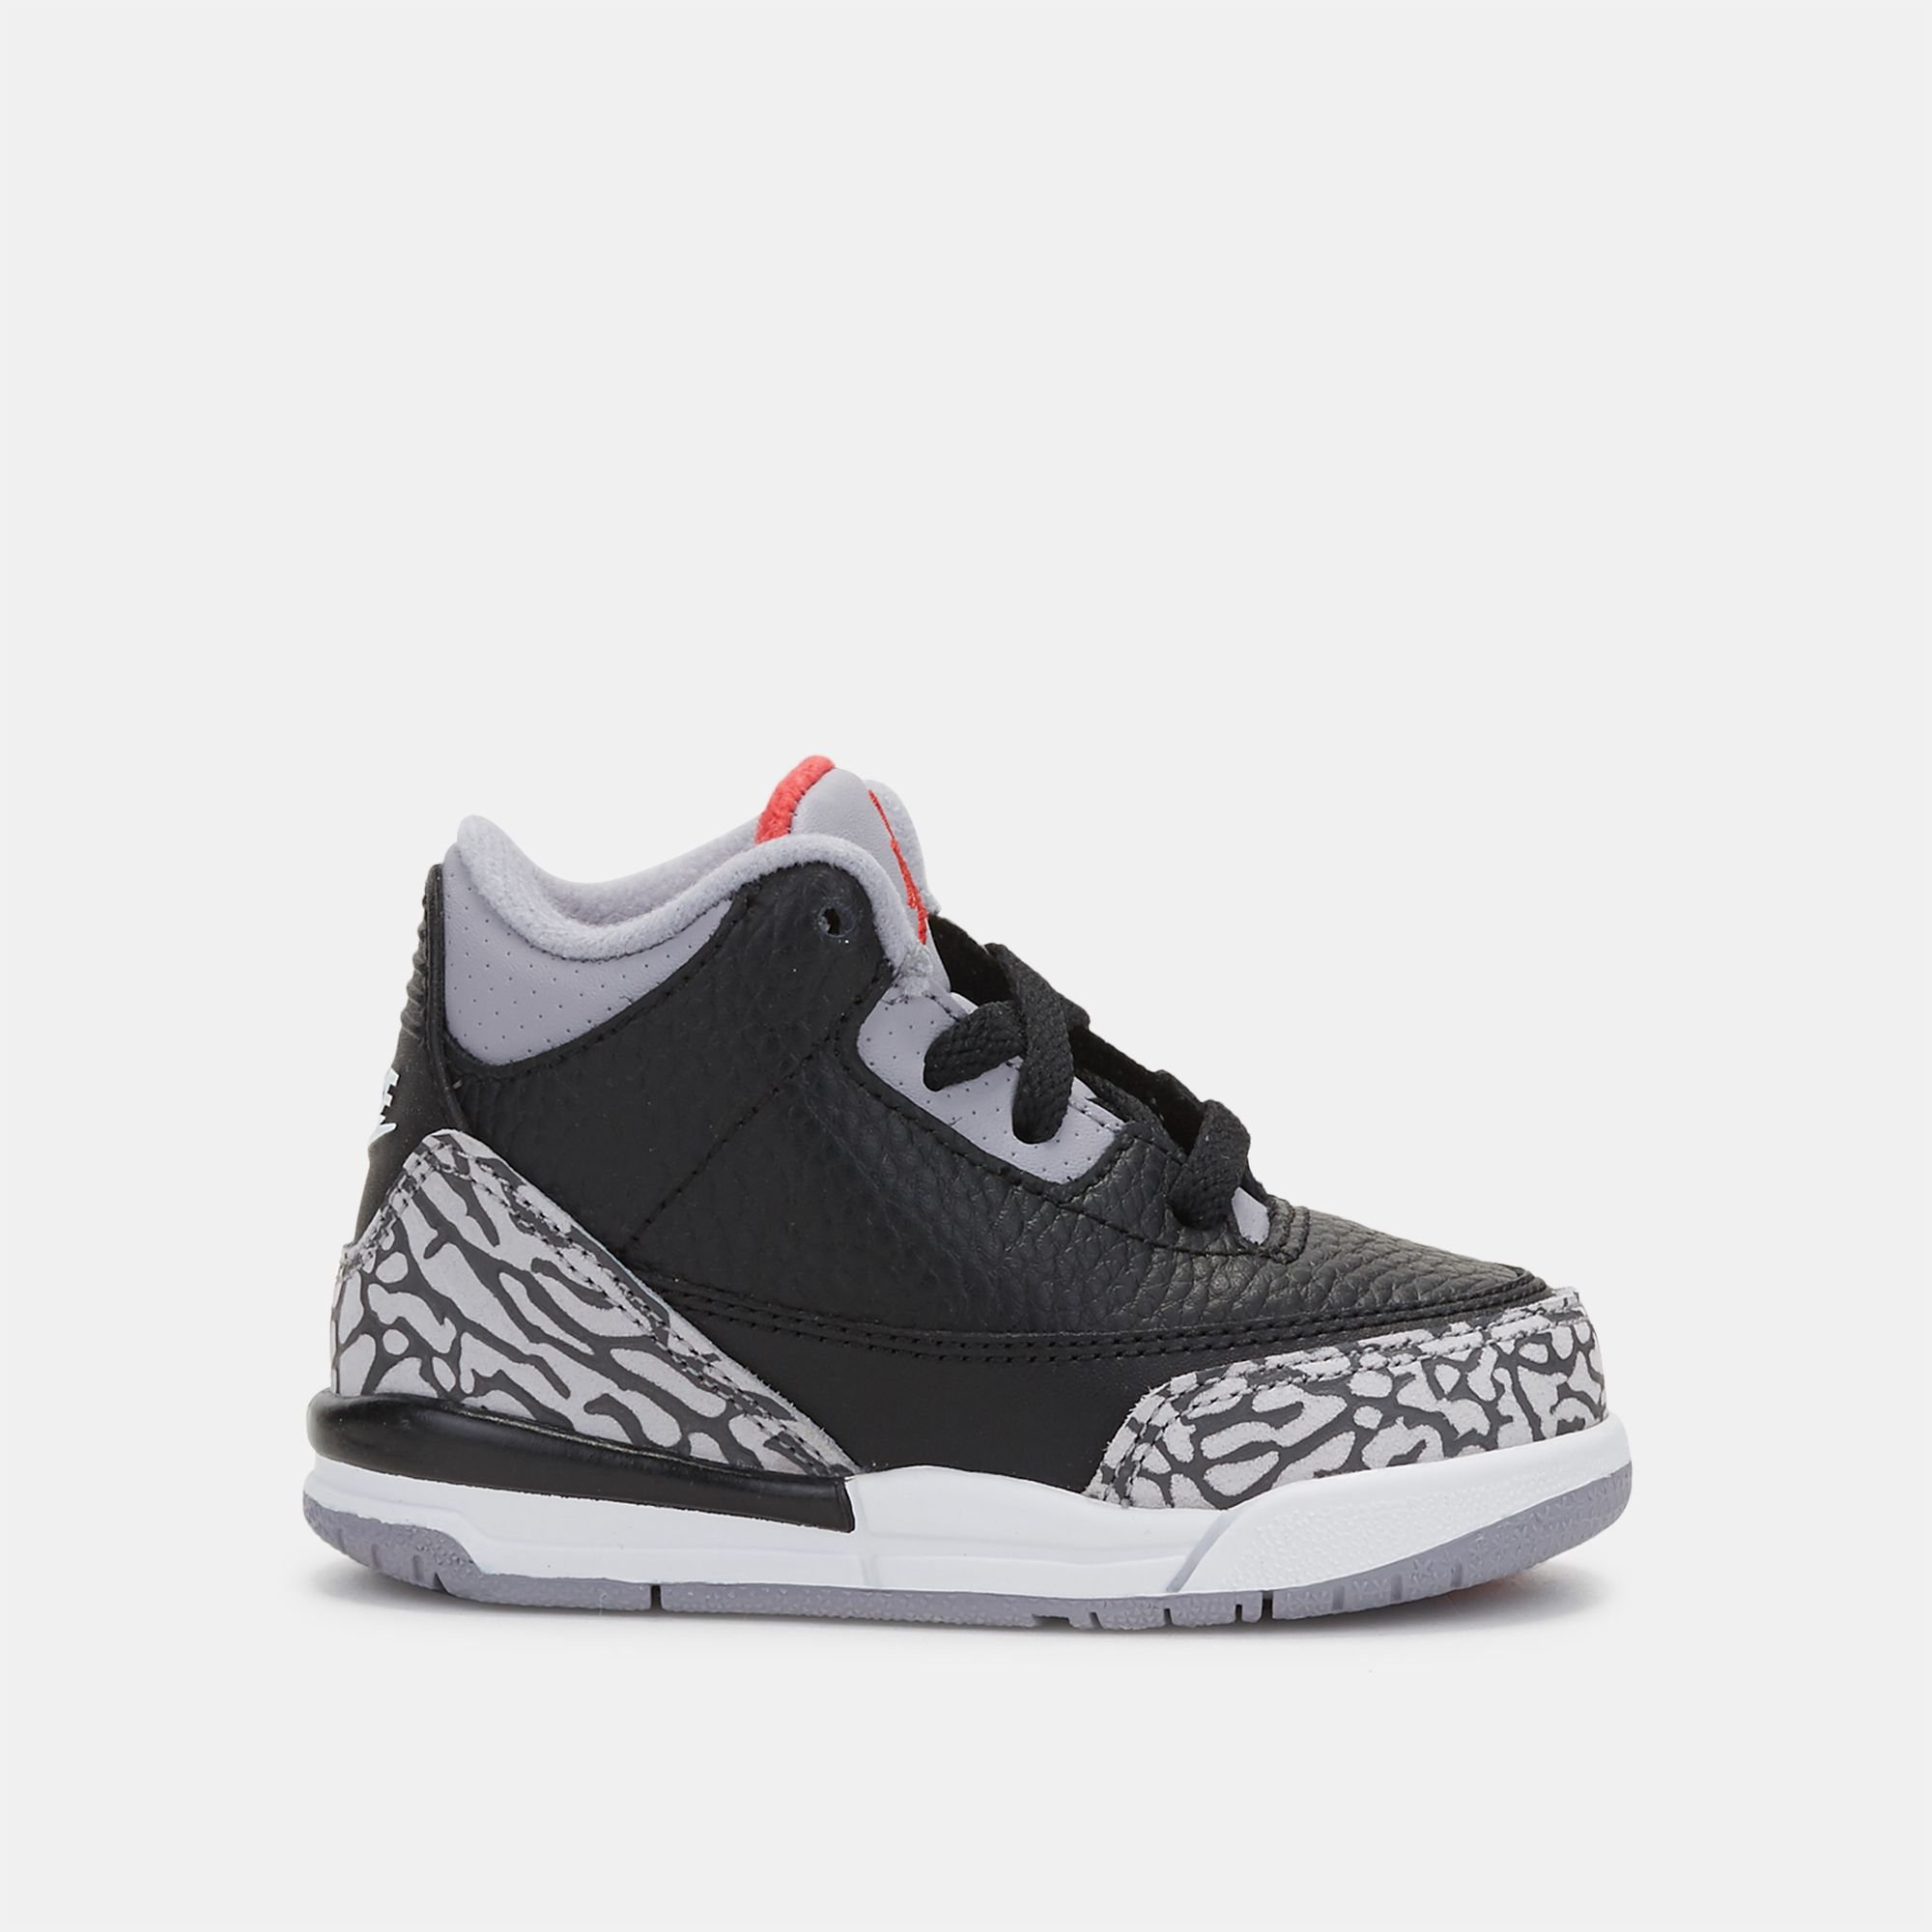 separation shoes fe70e 8a50a Jordan Kids  Air Jordan 3 OG Retro Black Cement   Basketball Shoes ...